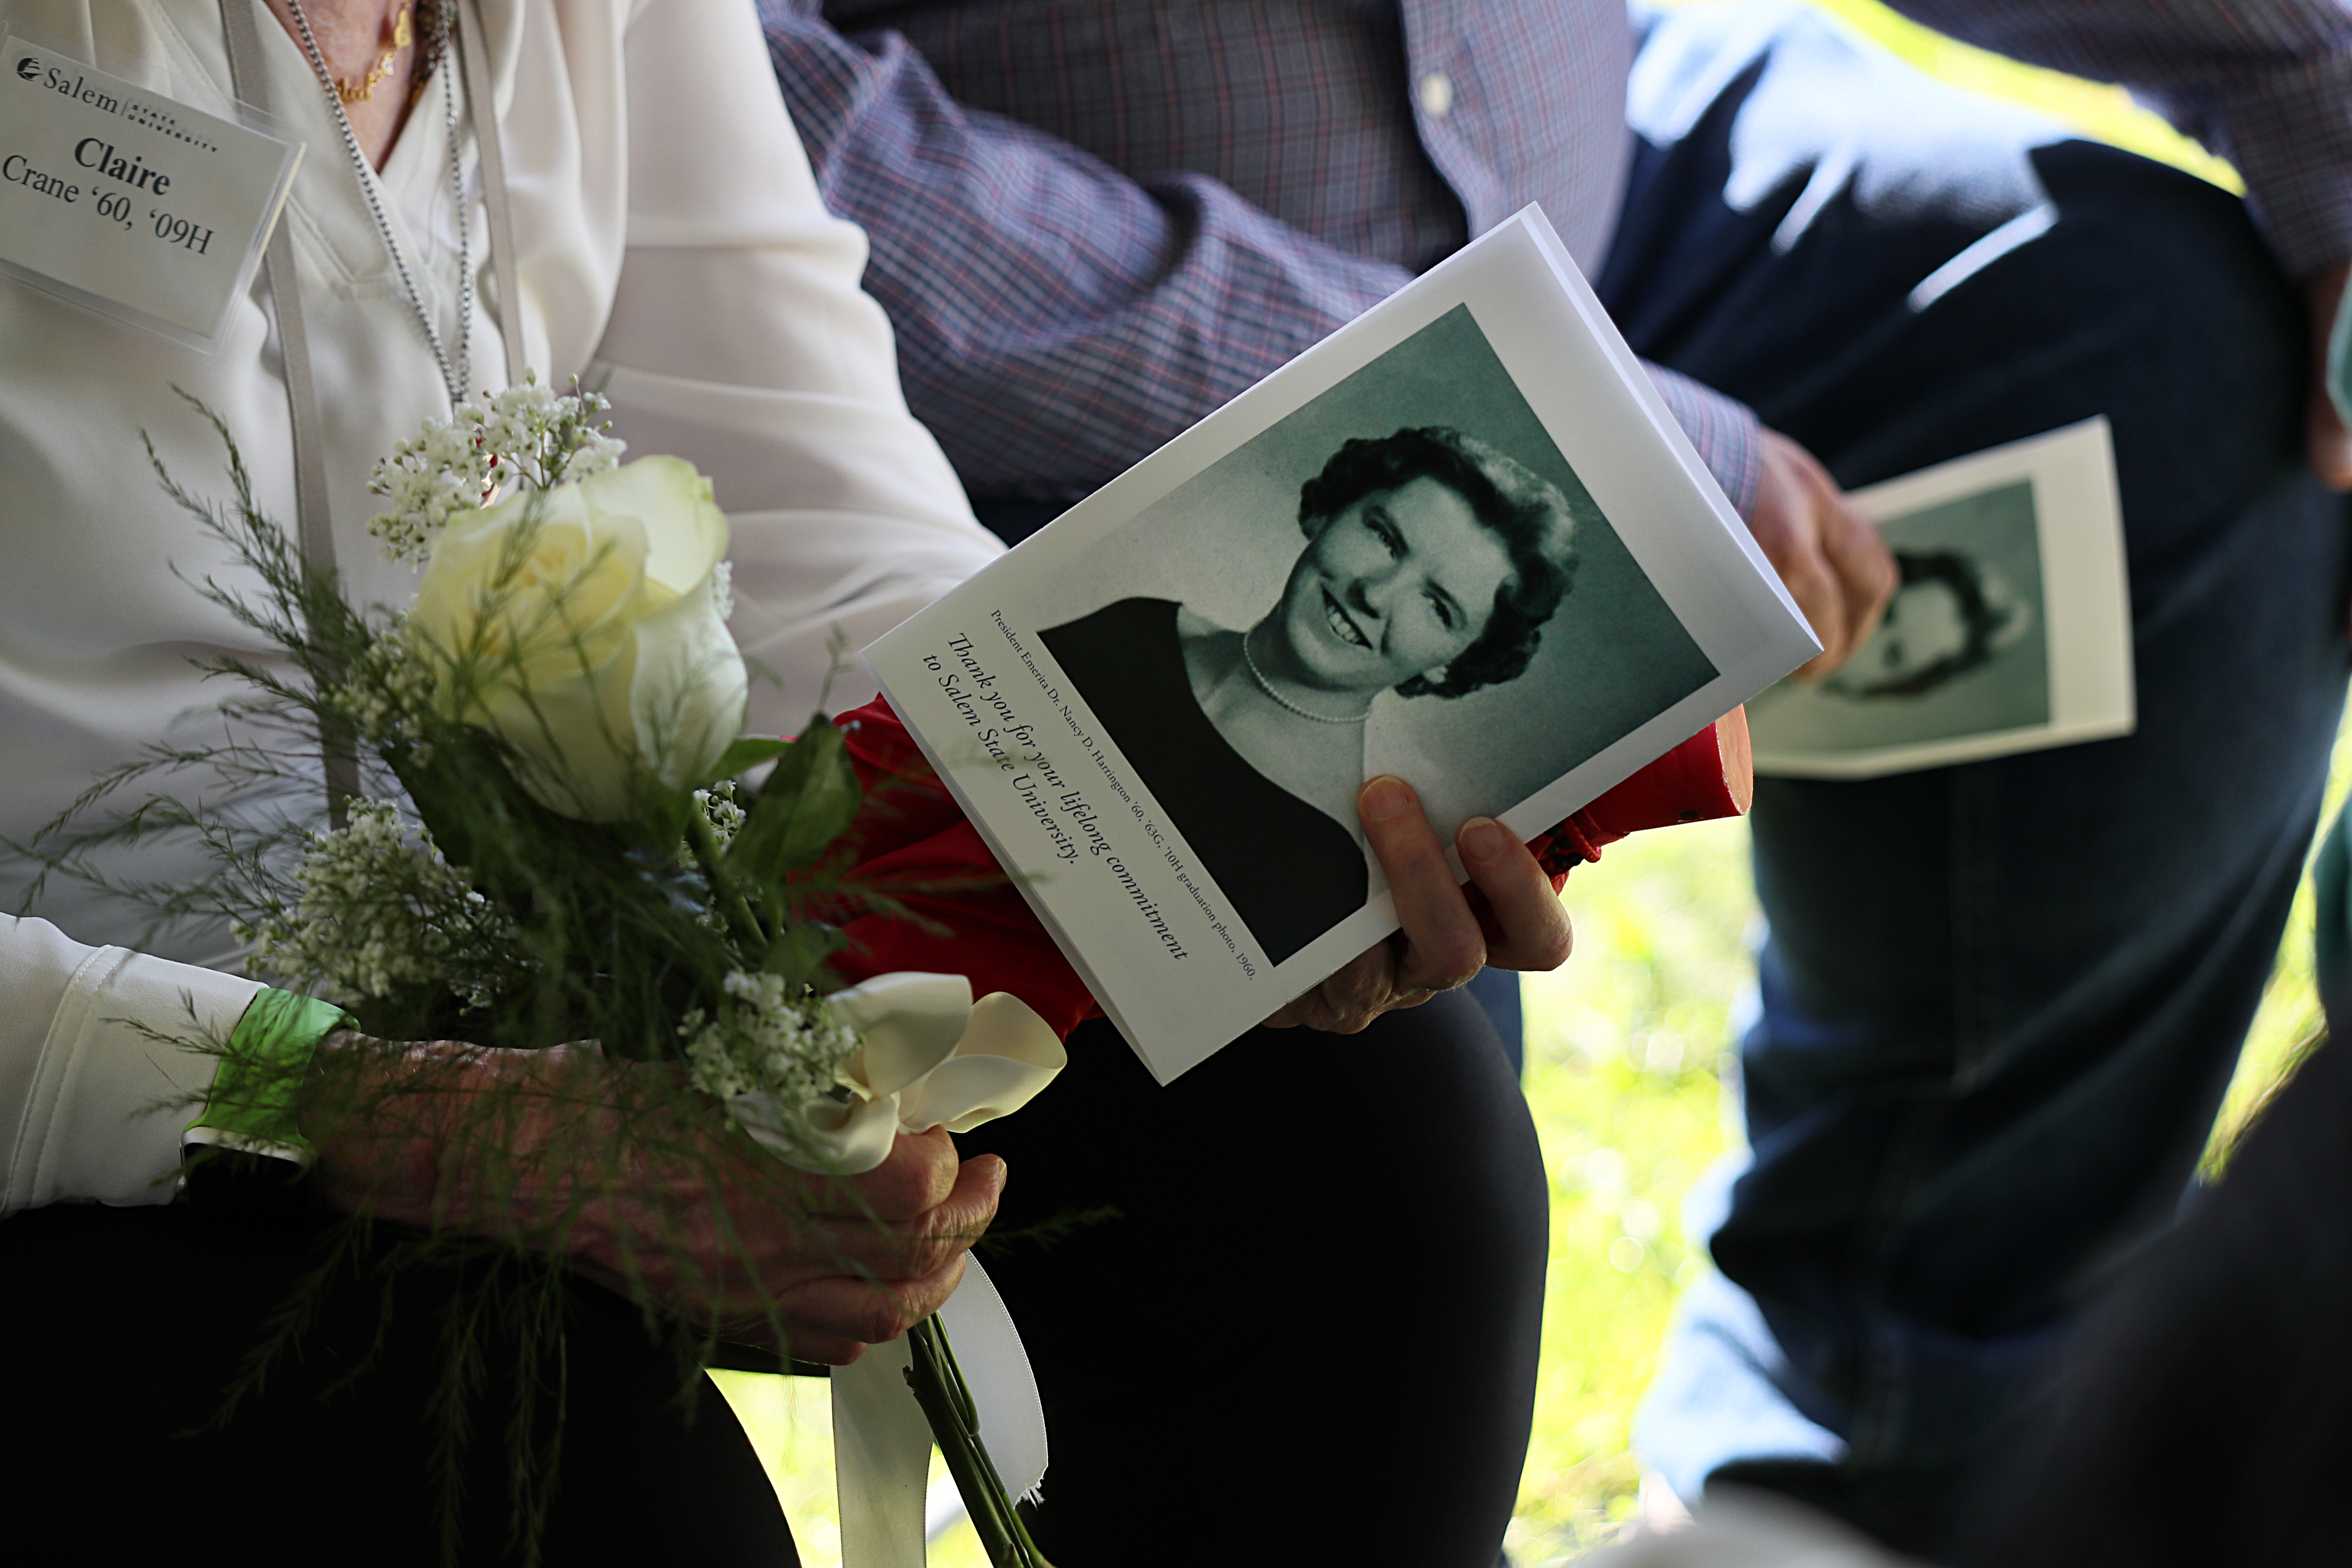 Members of the 1960 class received white roses in honor of their classmate, Nancy D. Harrington, at the ceremony on Friday.  Suzanne Kreiter / Globe staff